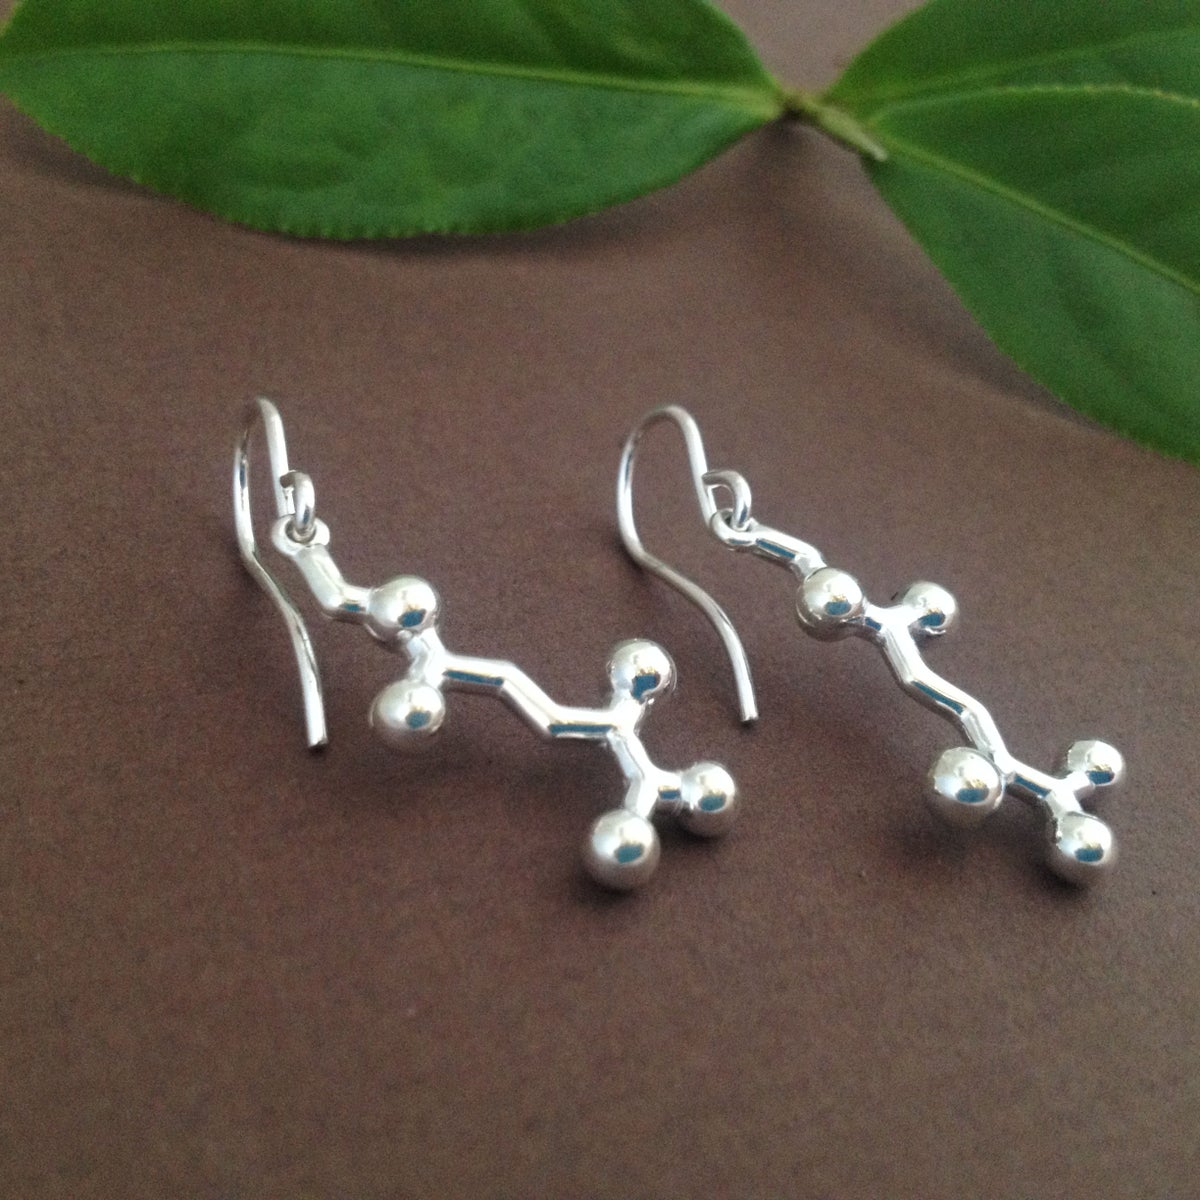 Image of theanine earrings